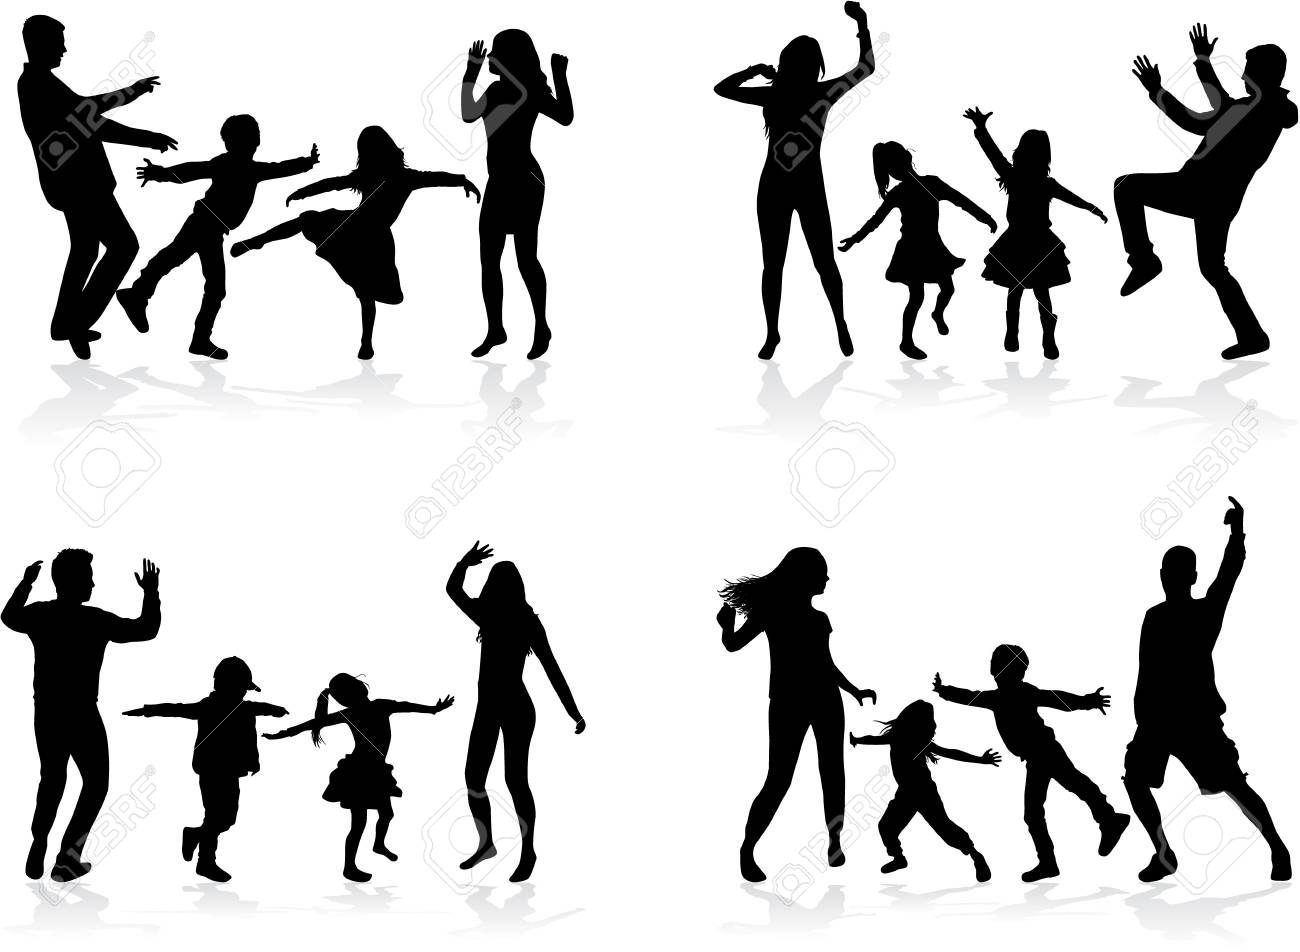 Happy family. Dancing silhouettes. - 120351859